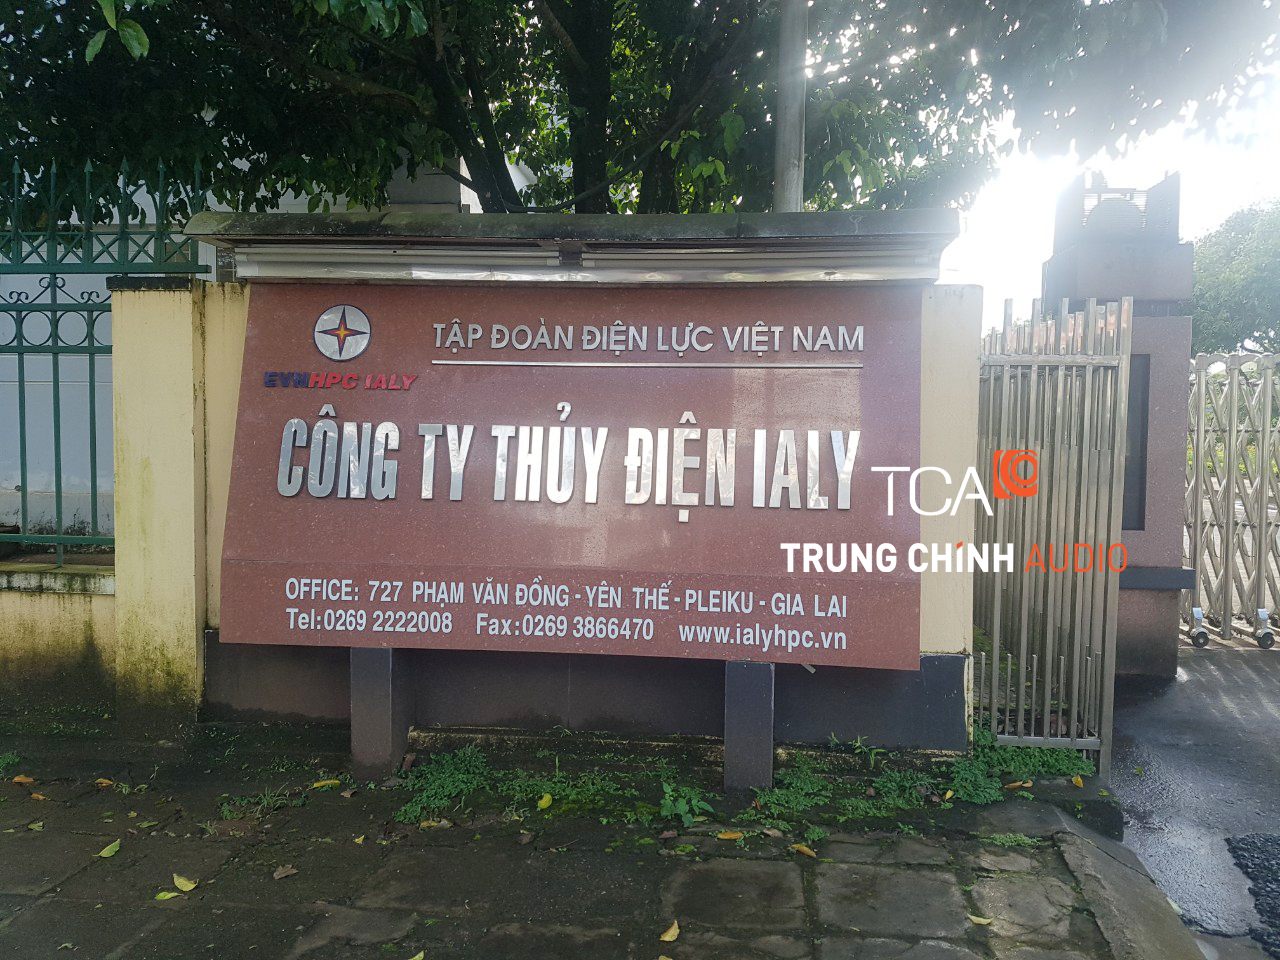 tca-lap-dat-am-thanh-he-thong-thuy-dien-ialy